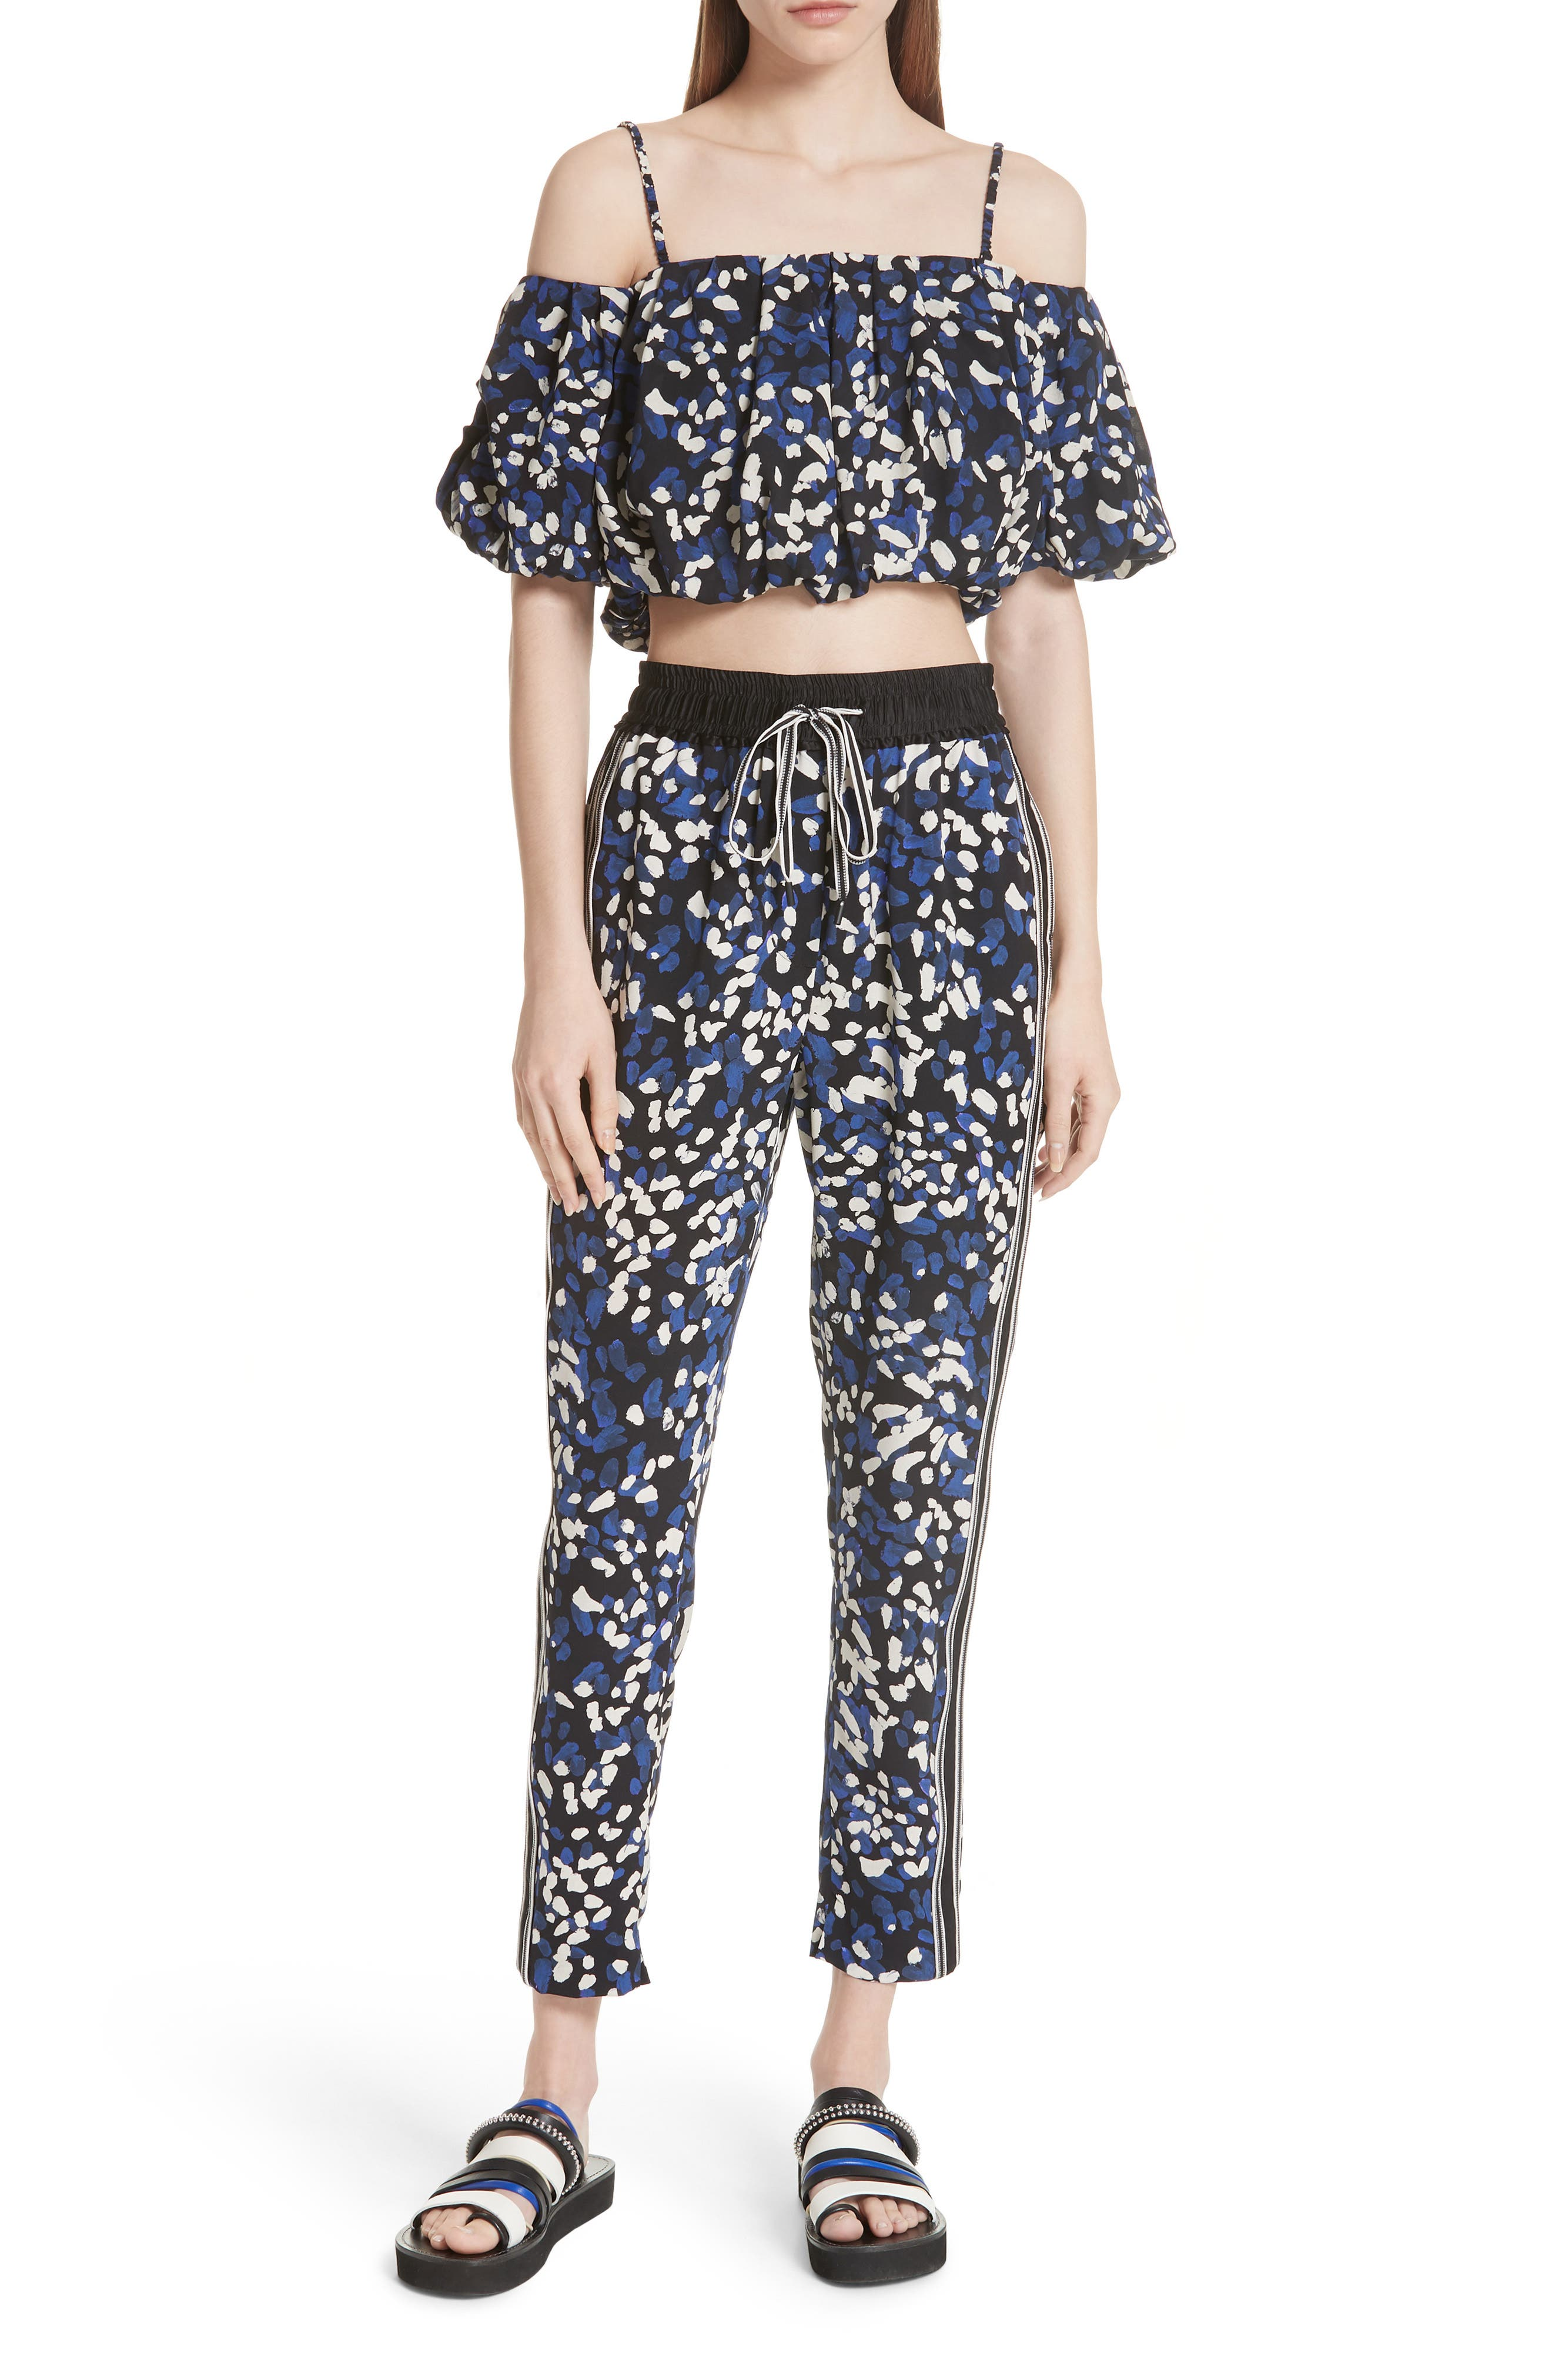 3.1 Phillip Lim Painted Dot Off the Shoulder Crop Top